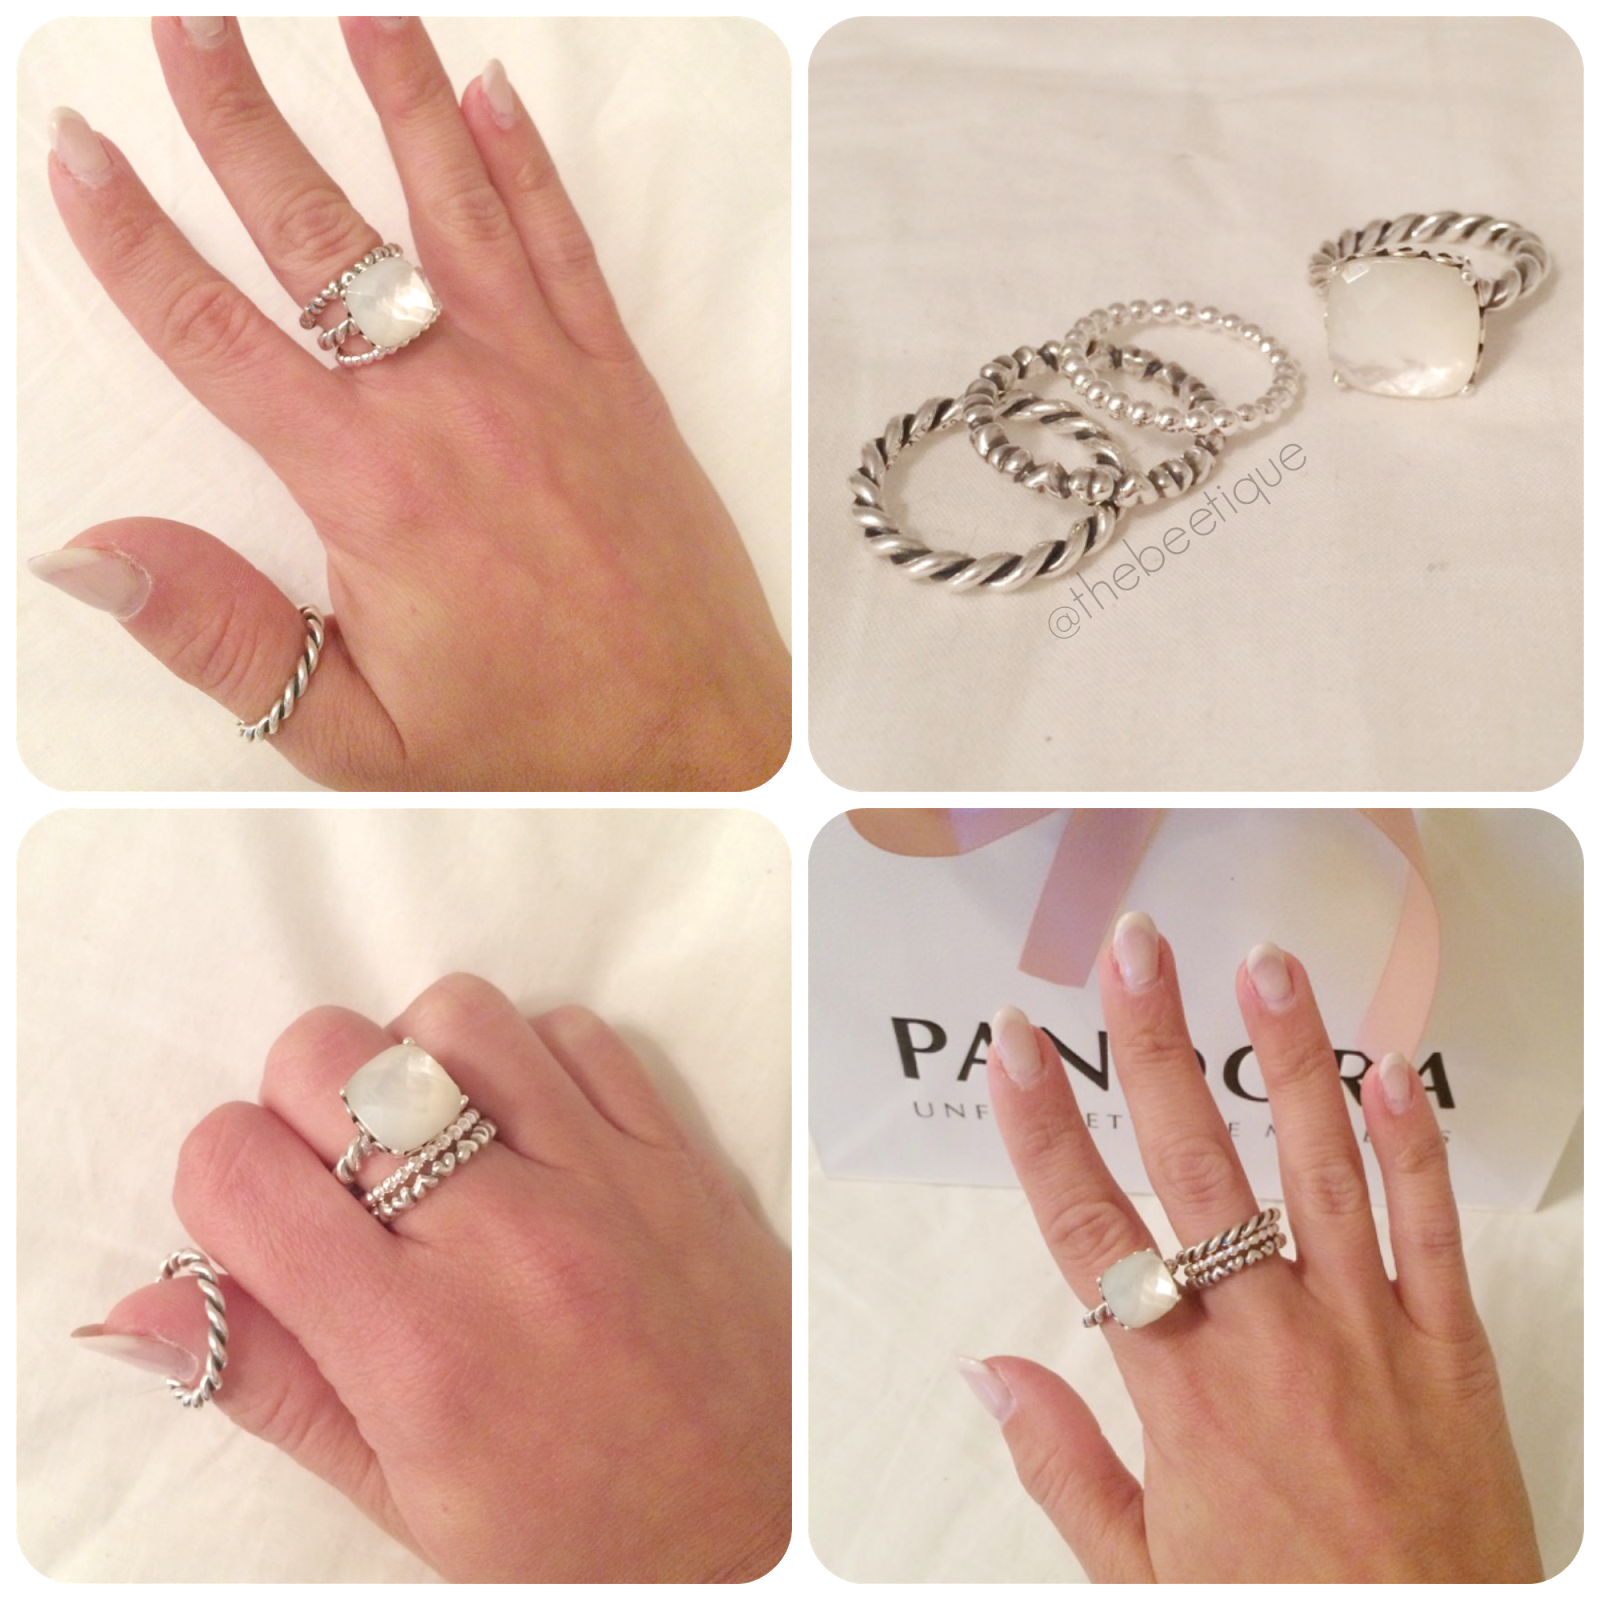 fe35c1f13 Pandora stackable rings, LOVE. Dainty & affordable! pandora mother of pearl  sincerity ring, eternal clouds, intertwined, forever love ring.